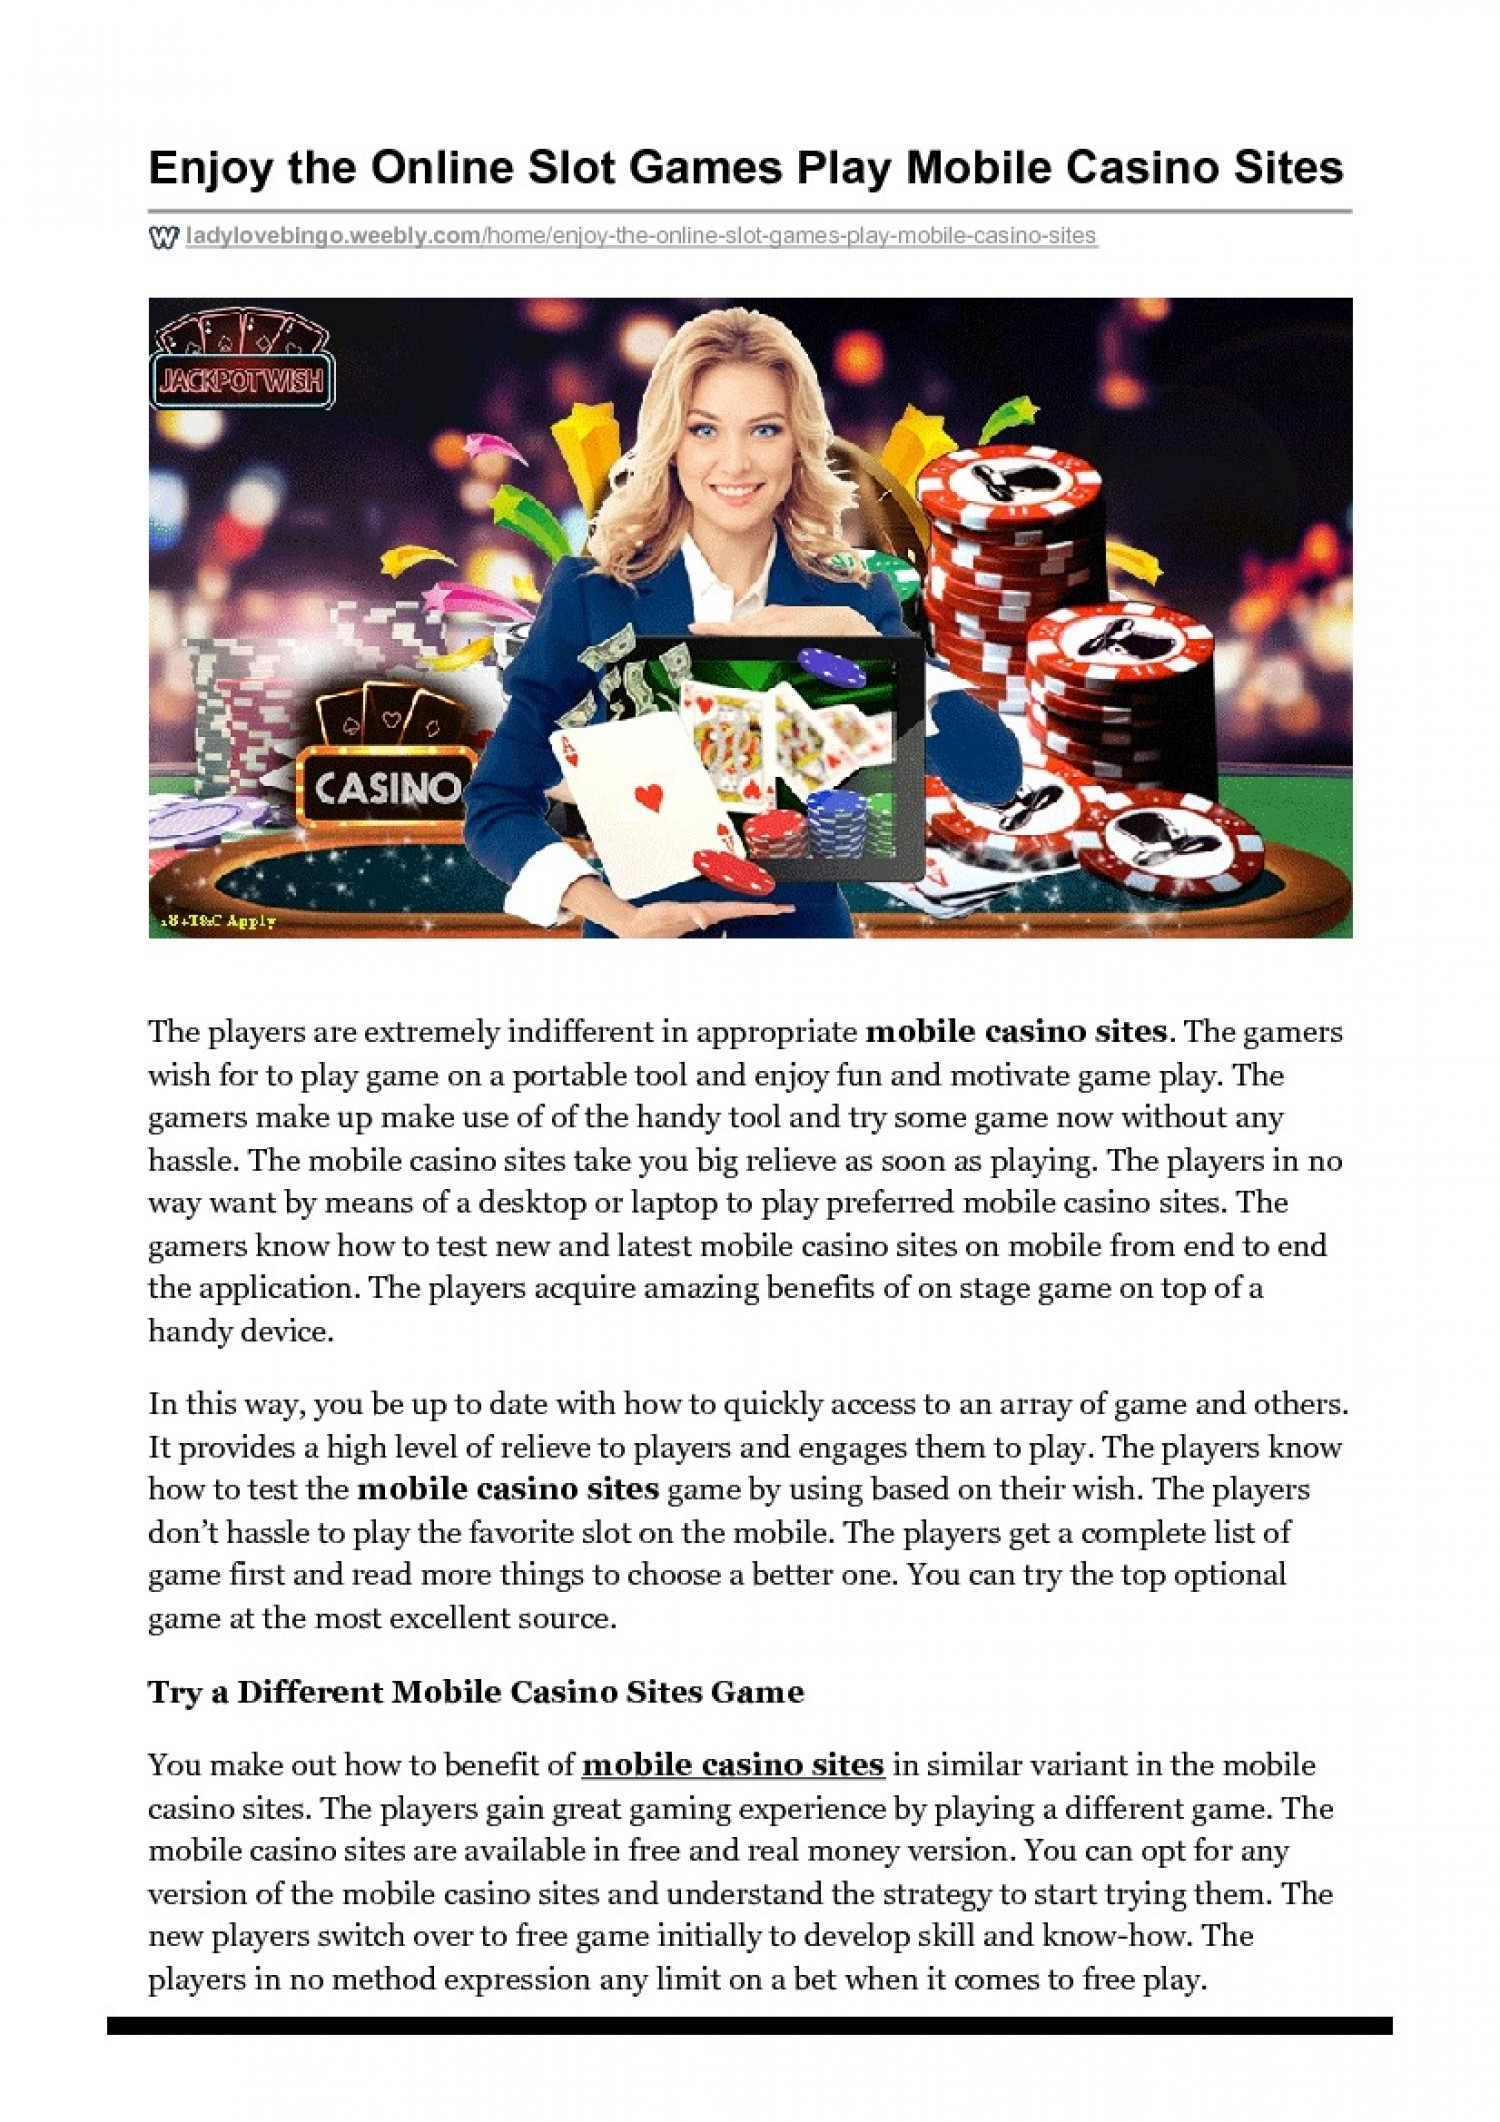 Enjoy the Online Slot Games Play Mobile Casino Sites Infographic